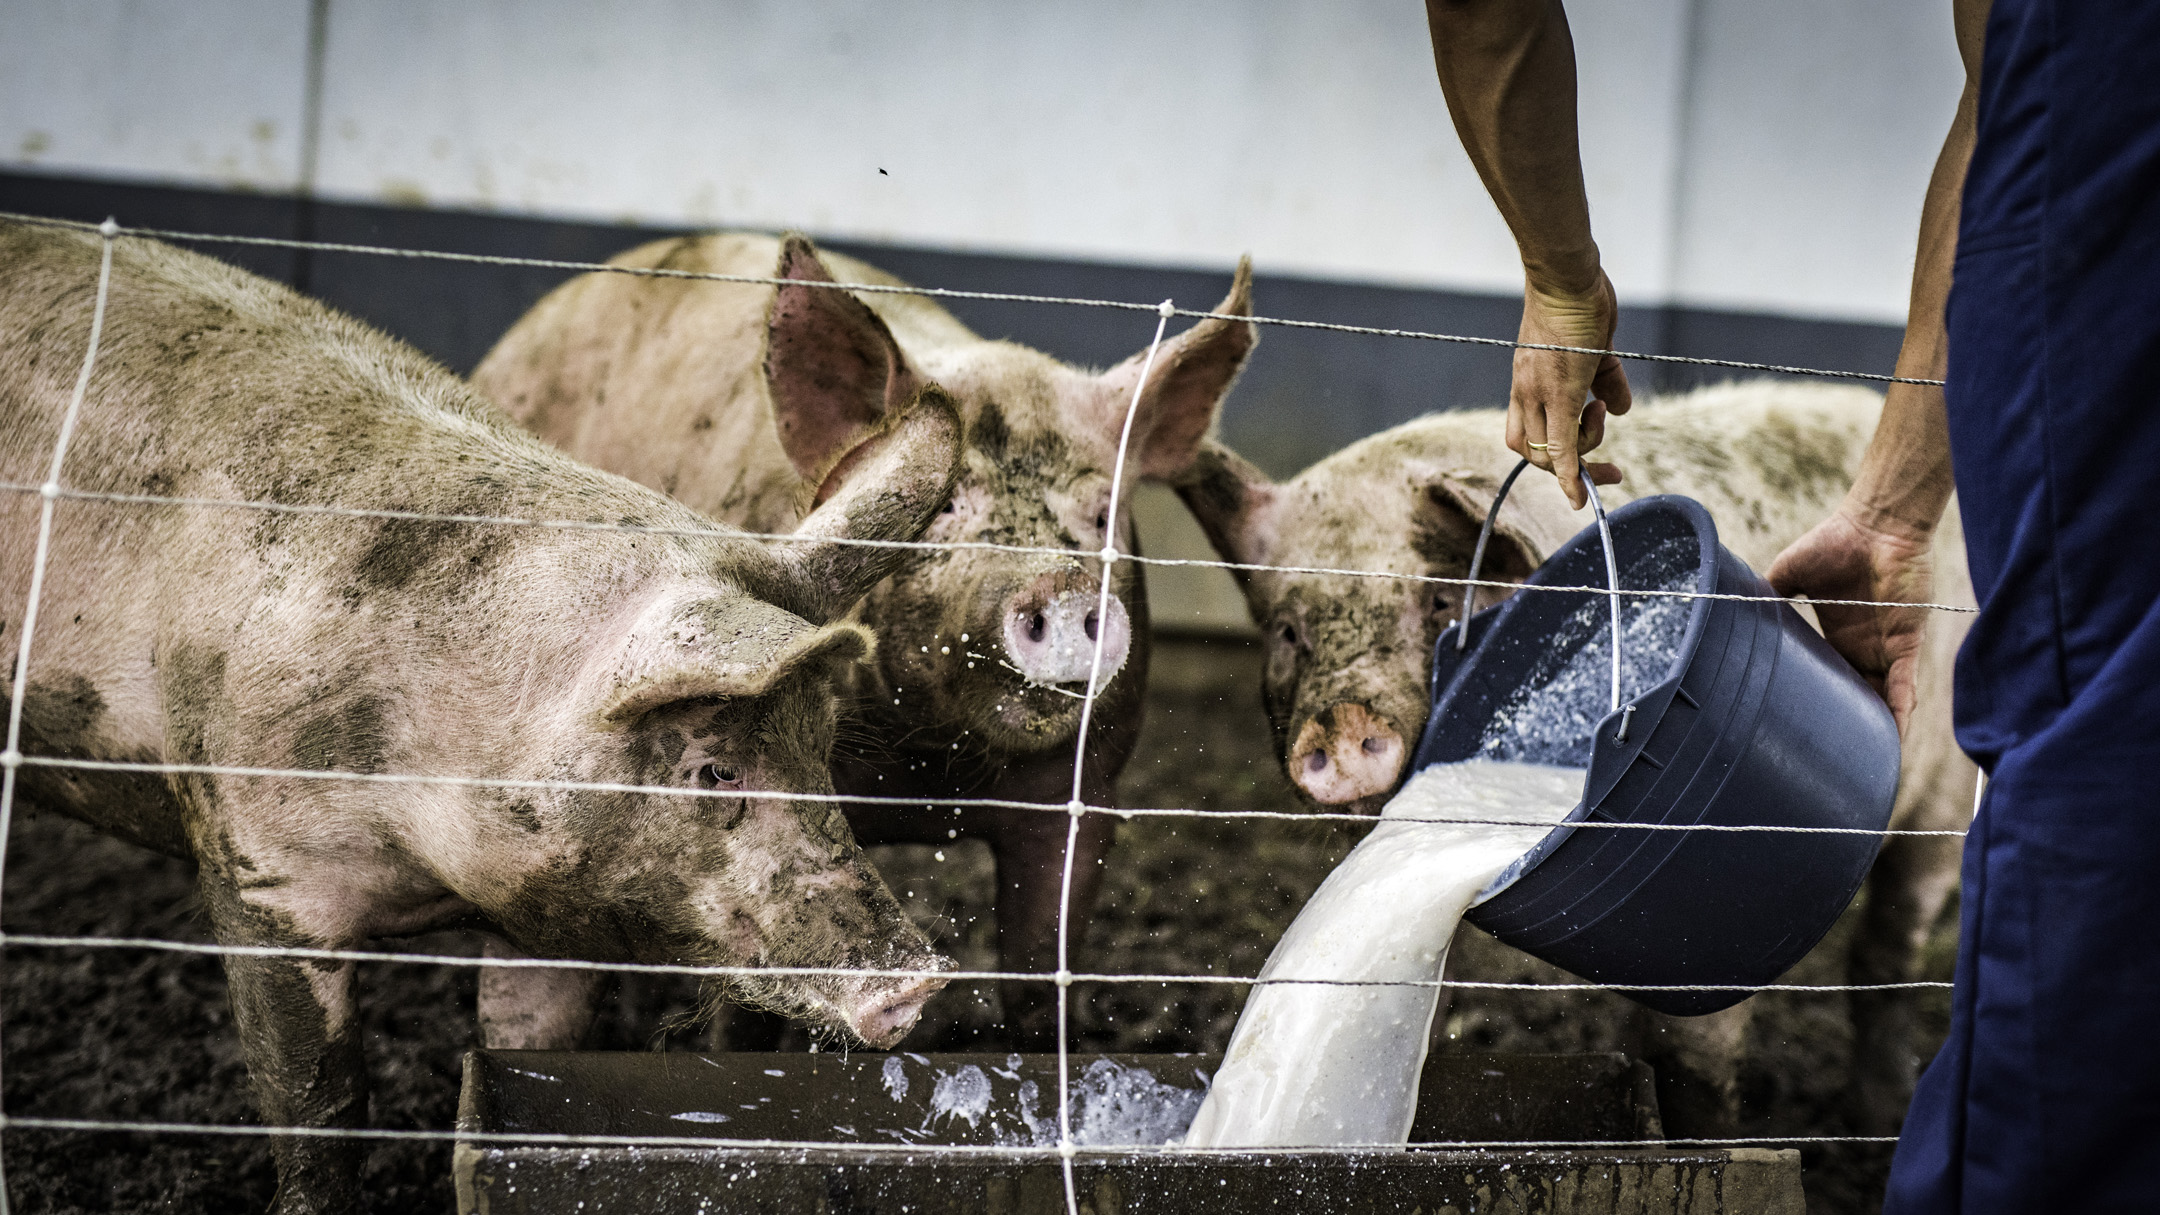 Antibiotic-resistant bacteria in farm animals are rising in low- and middle-income countries